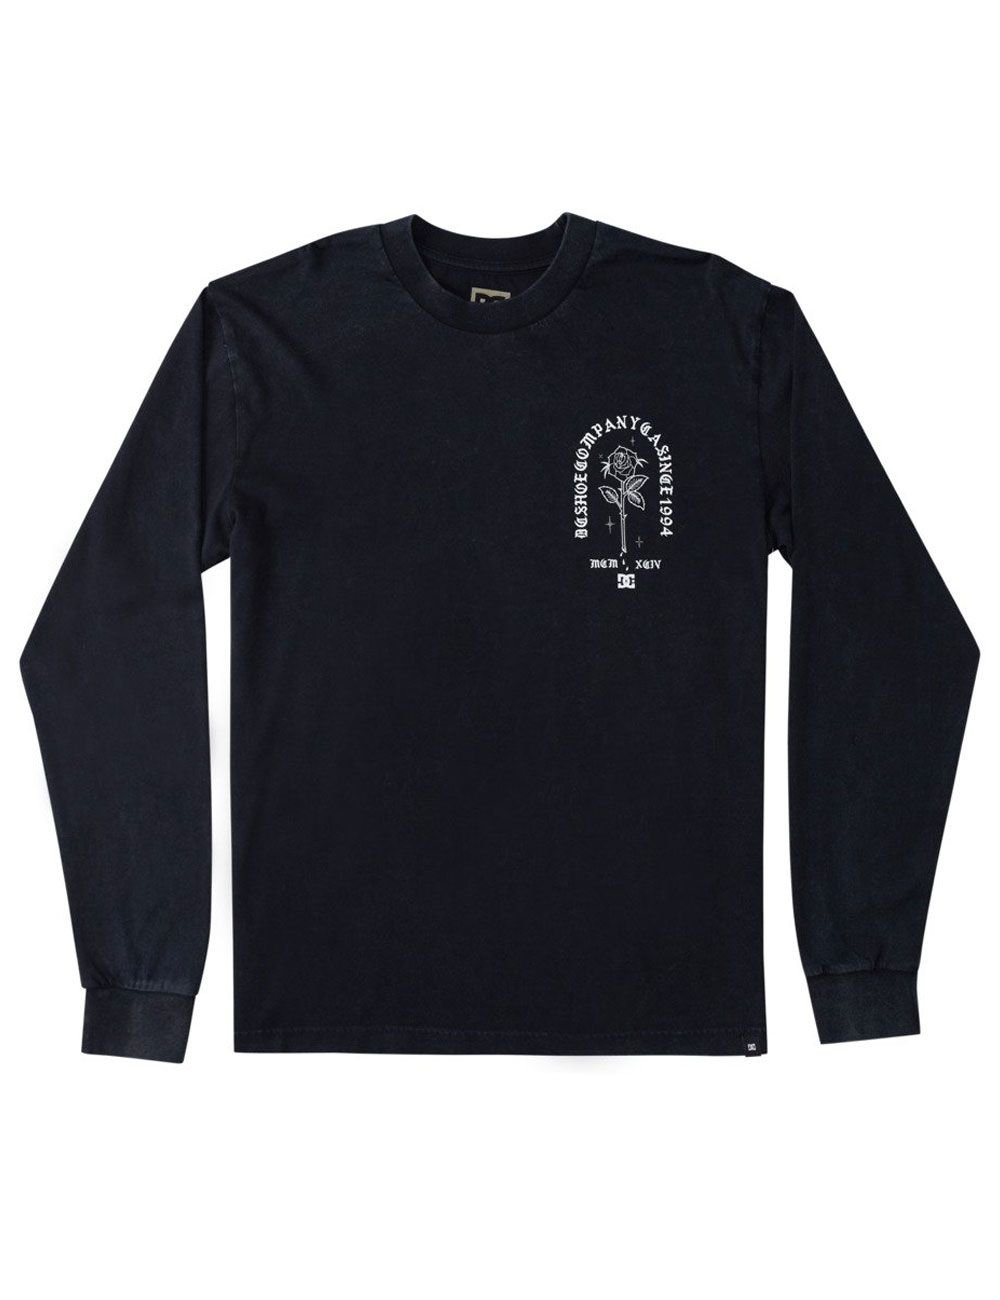 Dc Shoes Singled out long sleeve t-shirt ADYZT05047-BAC